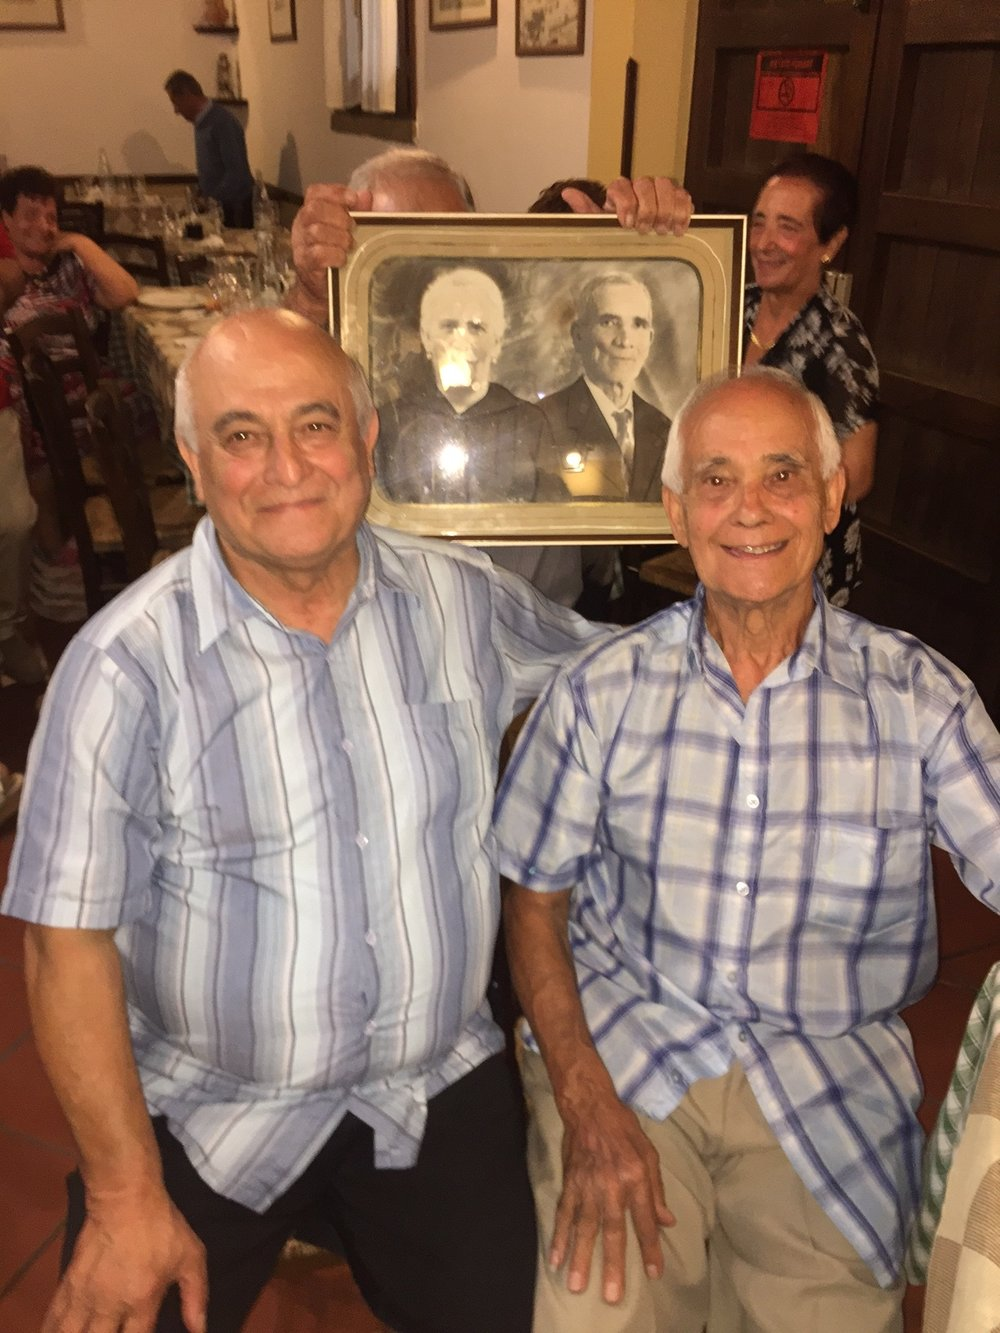 Sam and Joe together in Sicily (the picture in back is their grandfather Giuseppe Ferreri)